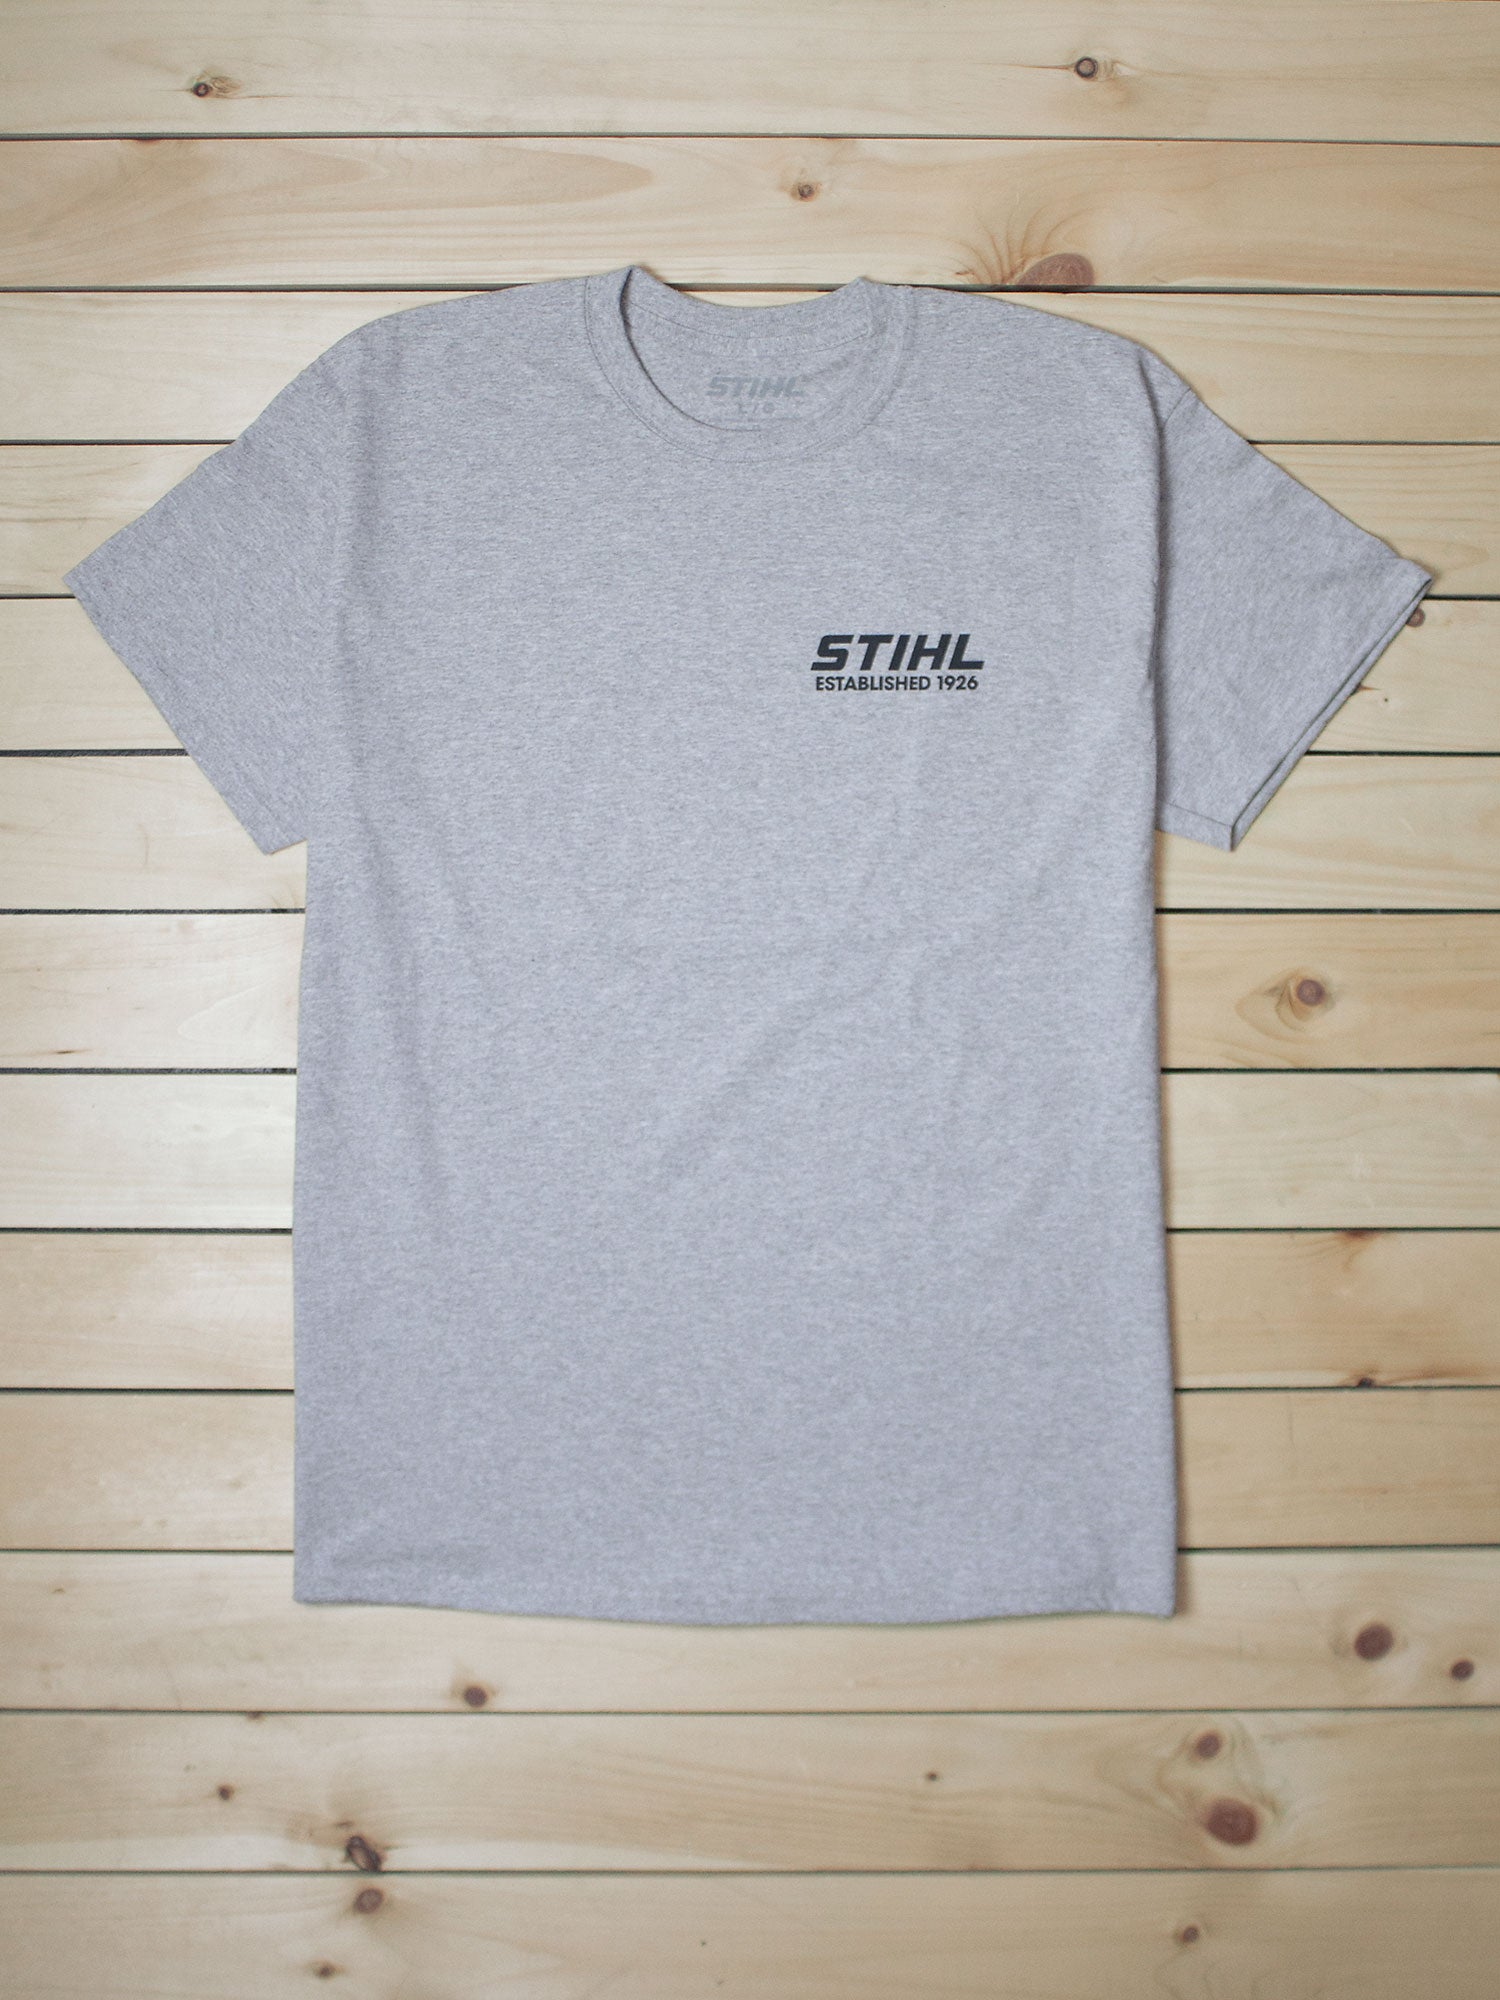 STIHL SAW BLADE Shirt